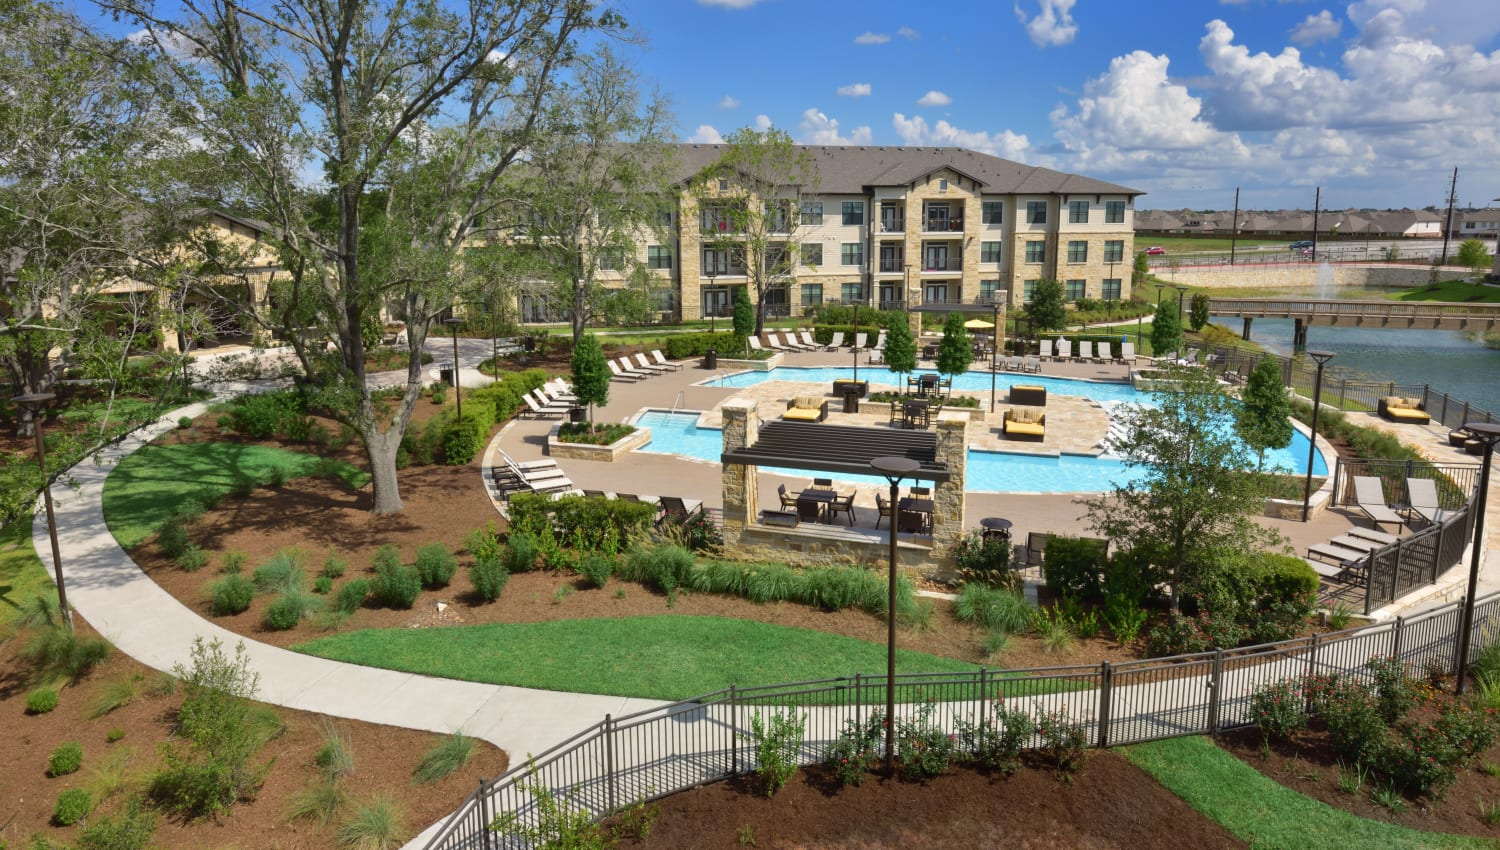 Community with a sparkling pool, walking paths and a lake at Olympus Falcon Landing in Katy, Texas